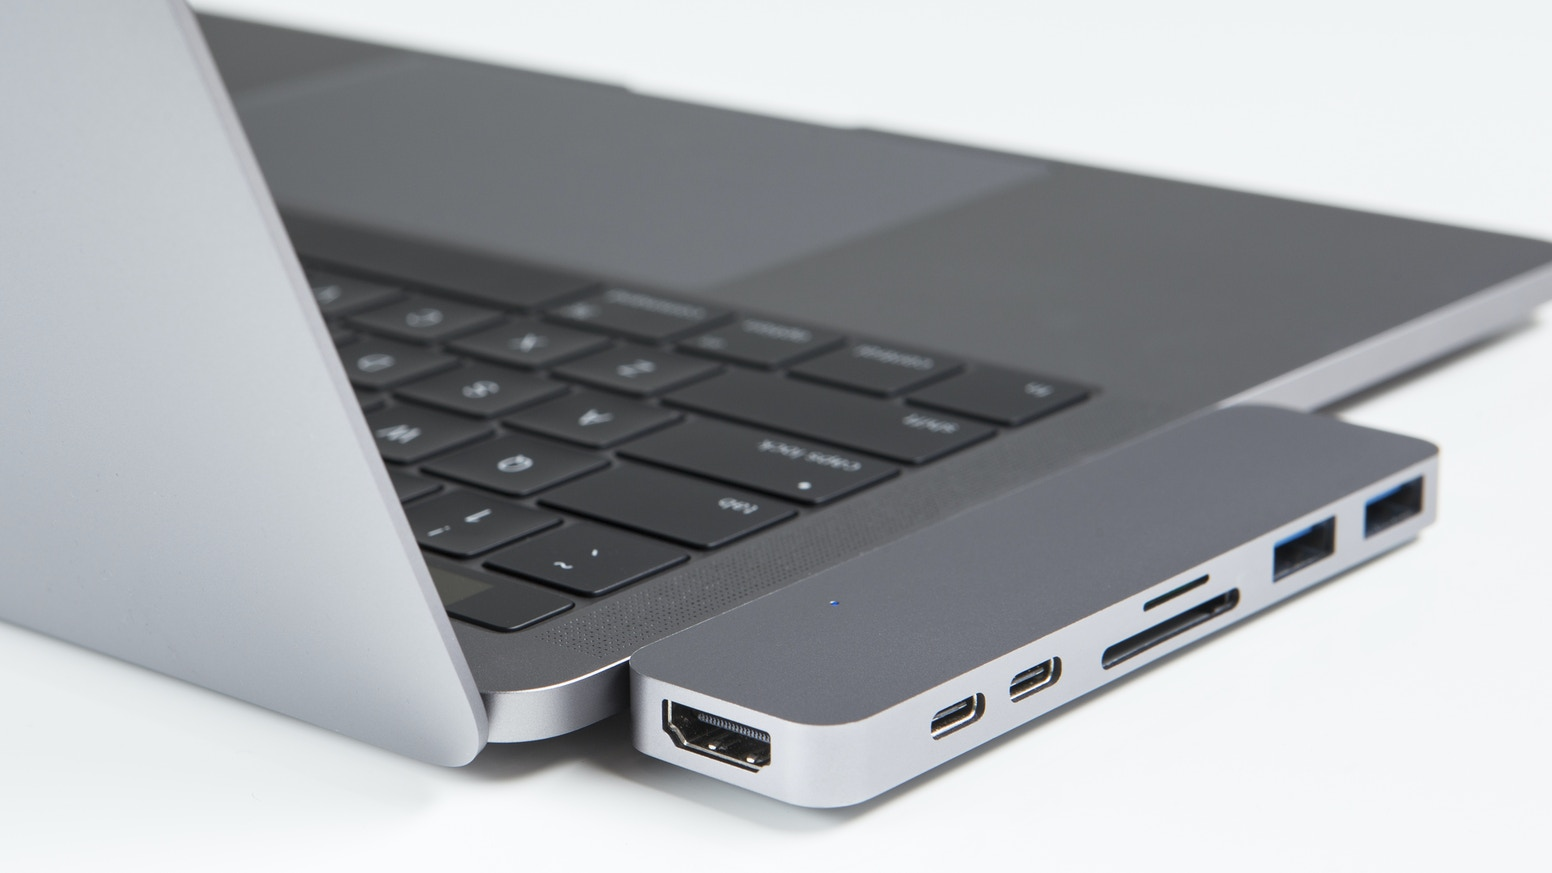 HyperDrive: Thunderbolt 3 USB-C Hub for 2016 MacBook Pro by